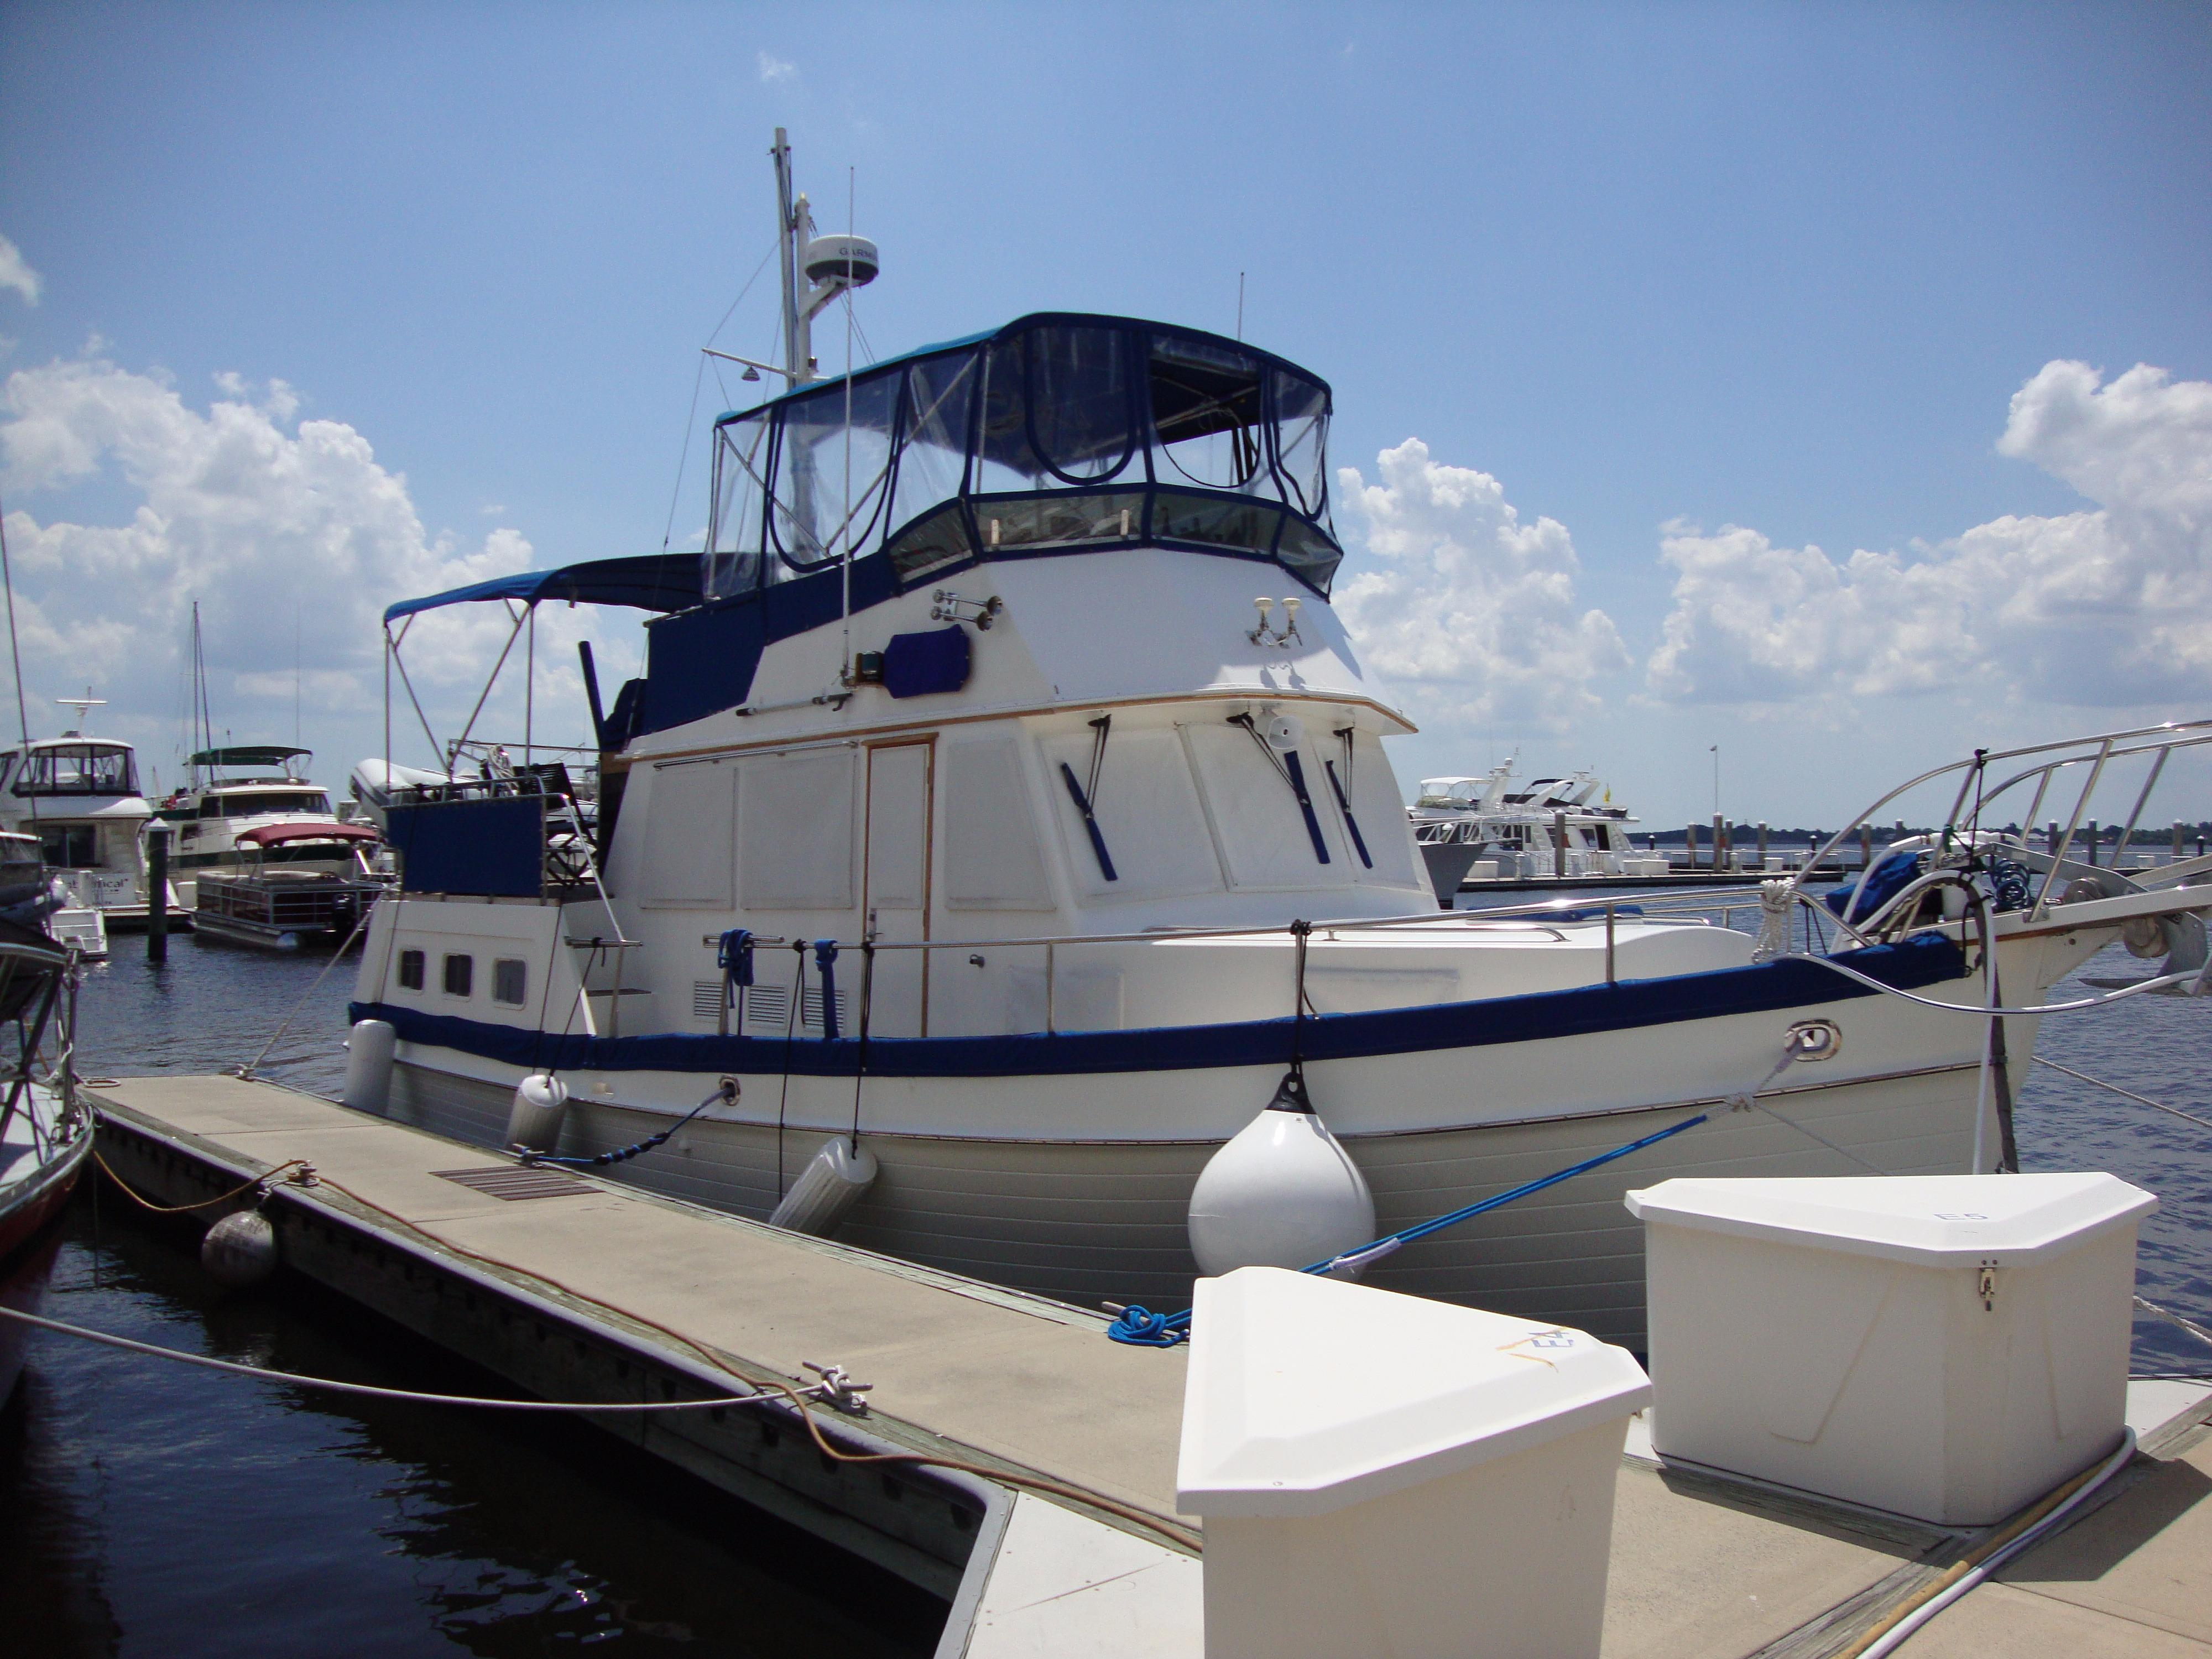 Used grand banks yachts for sale from 100 000 to 250 000 for Grand banks motor yachts for sale